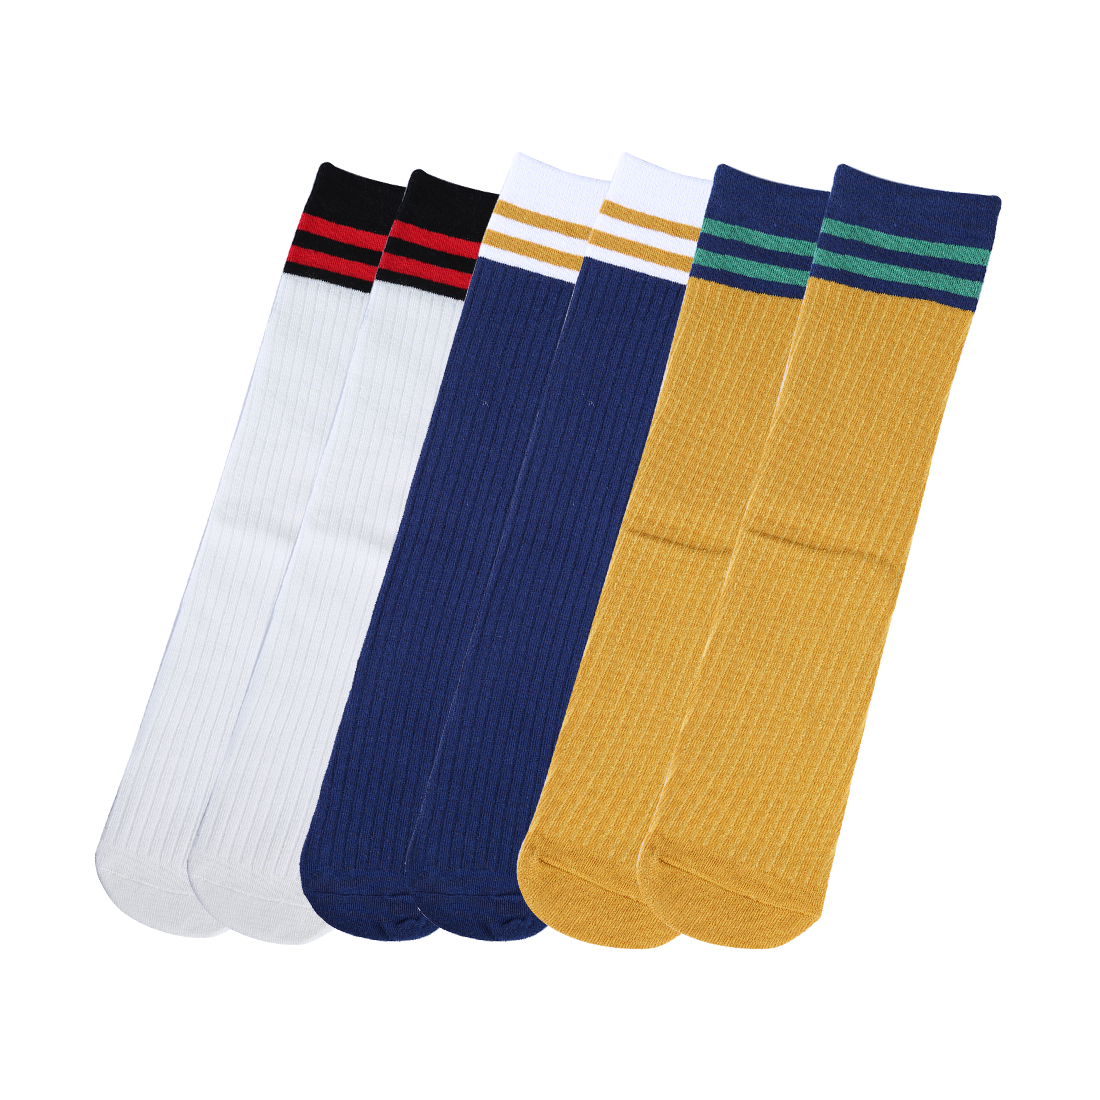 Women Stripes Color Blocks Cotton Crew Socks 6 Pairs 7-12 Navy Blue+Curry+White